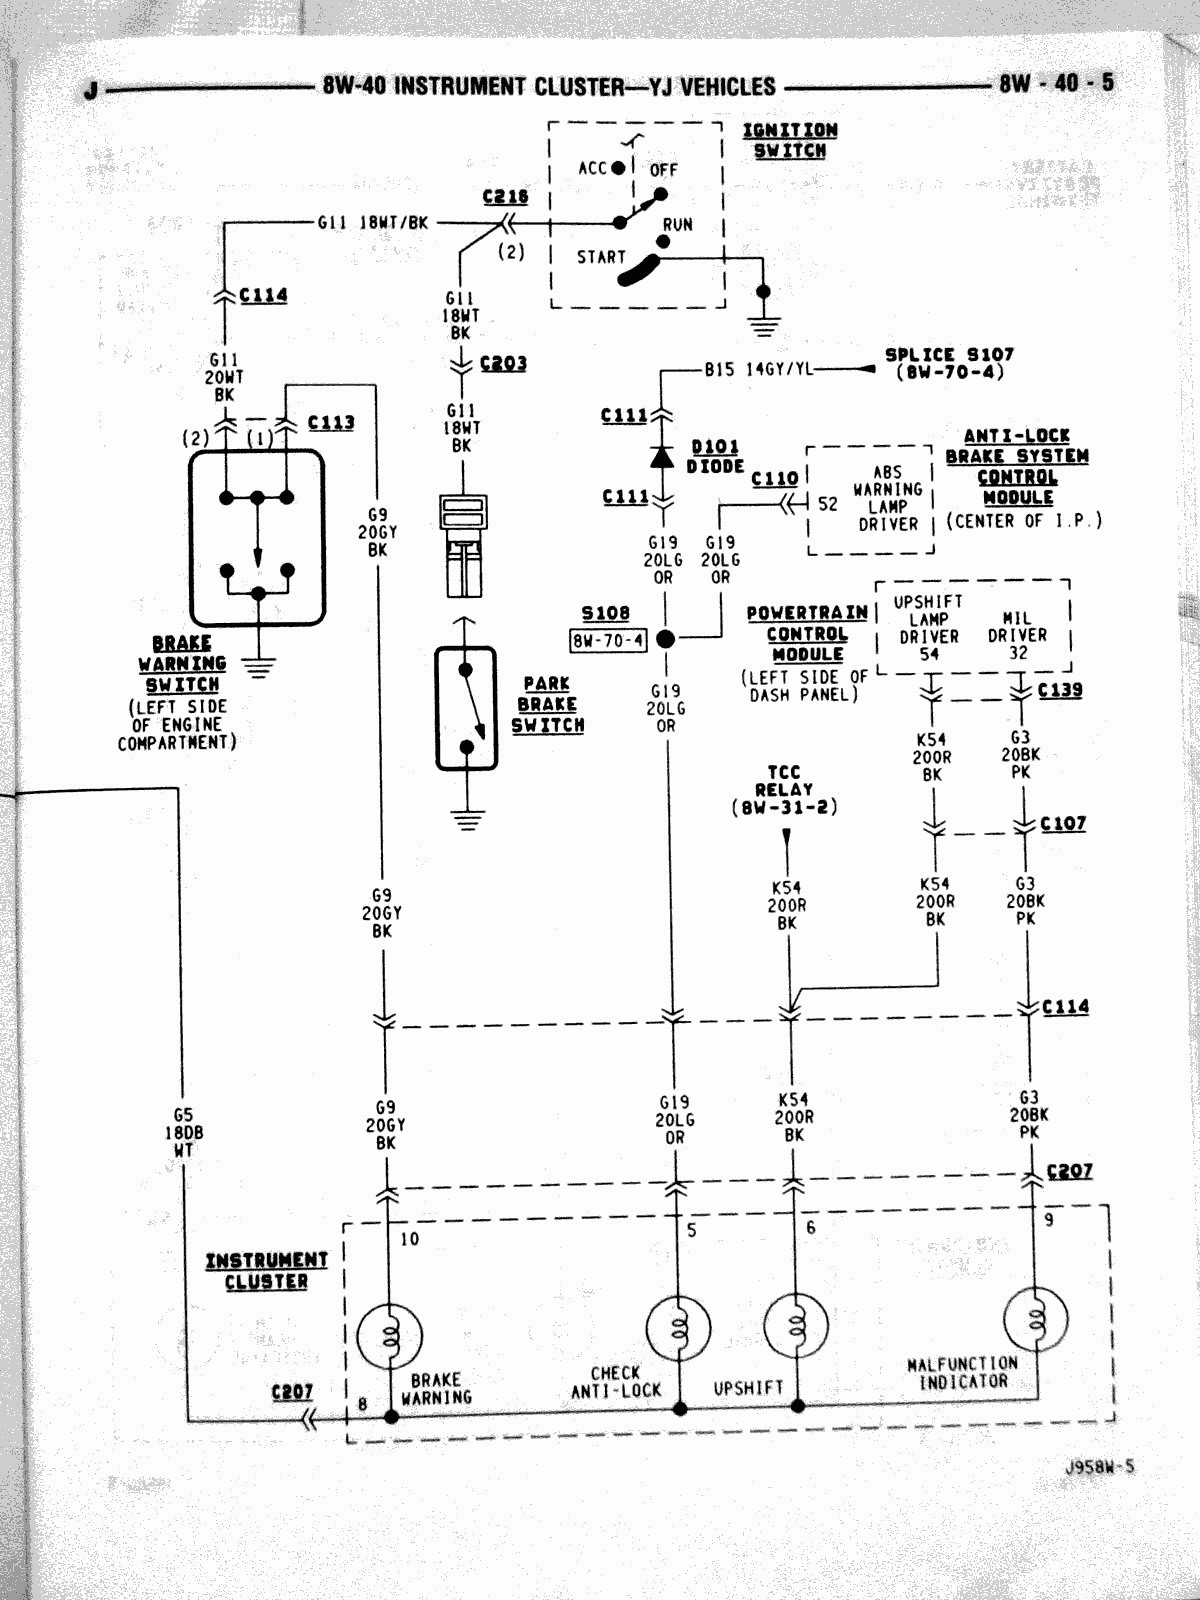 Typical Wiring Diagram Unique Great 91 Jeep Wrangler Wiring Diagram Jeep Pinterest